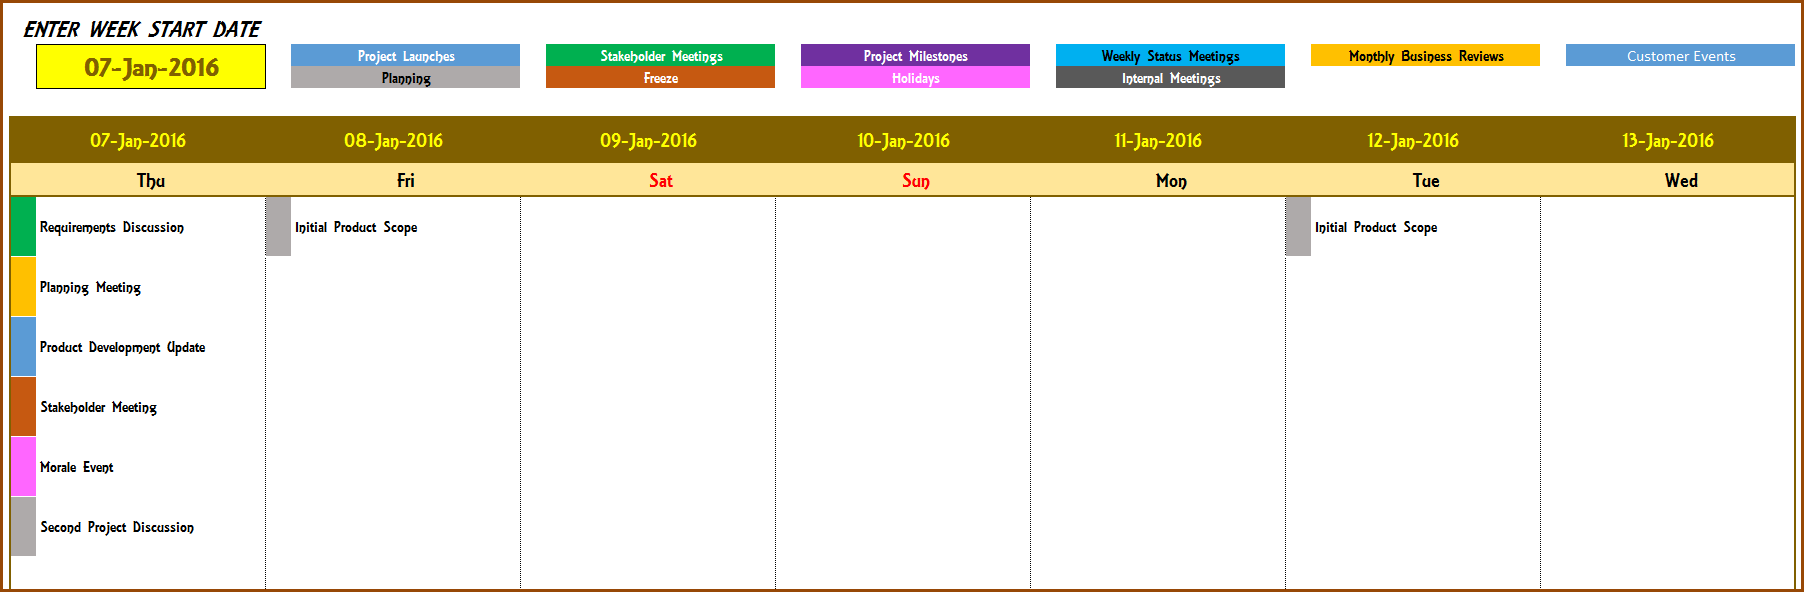 Weekly Calendar  Event Calendar Maker Excel Template  Event